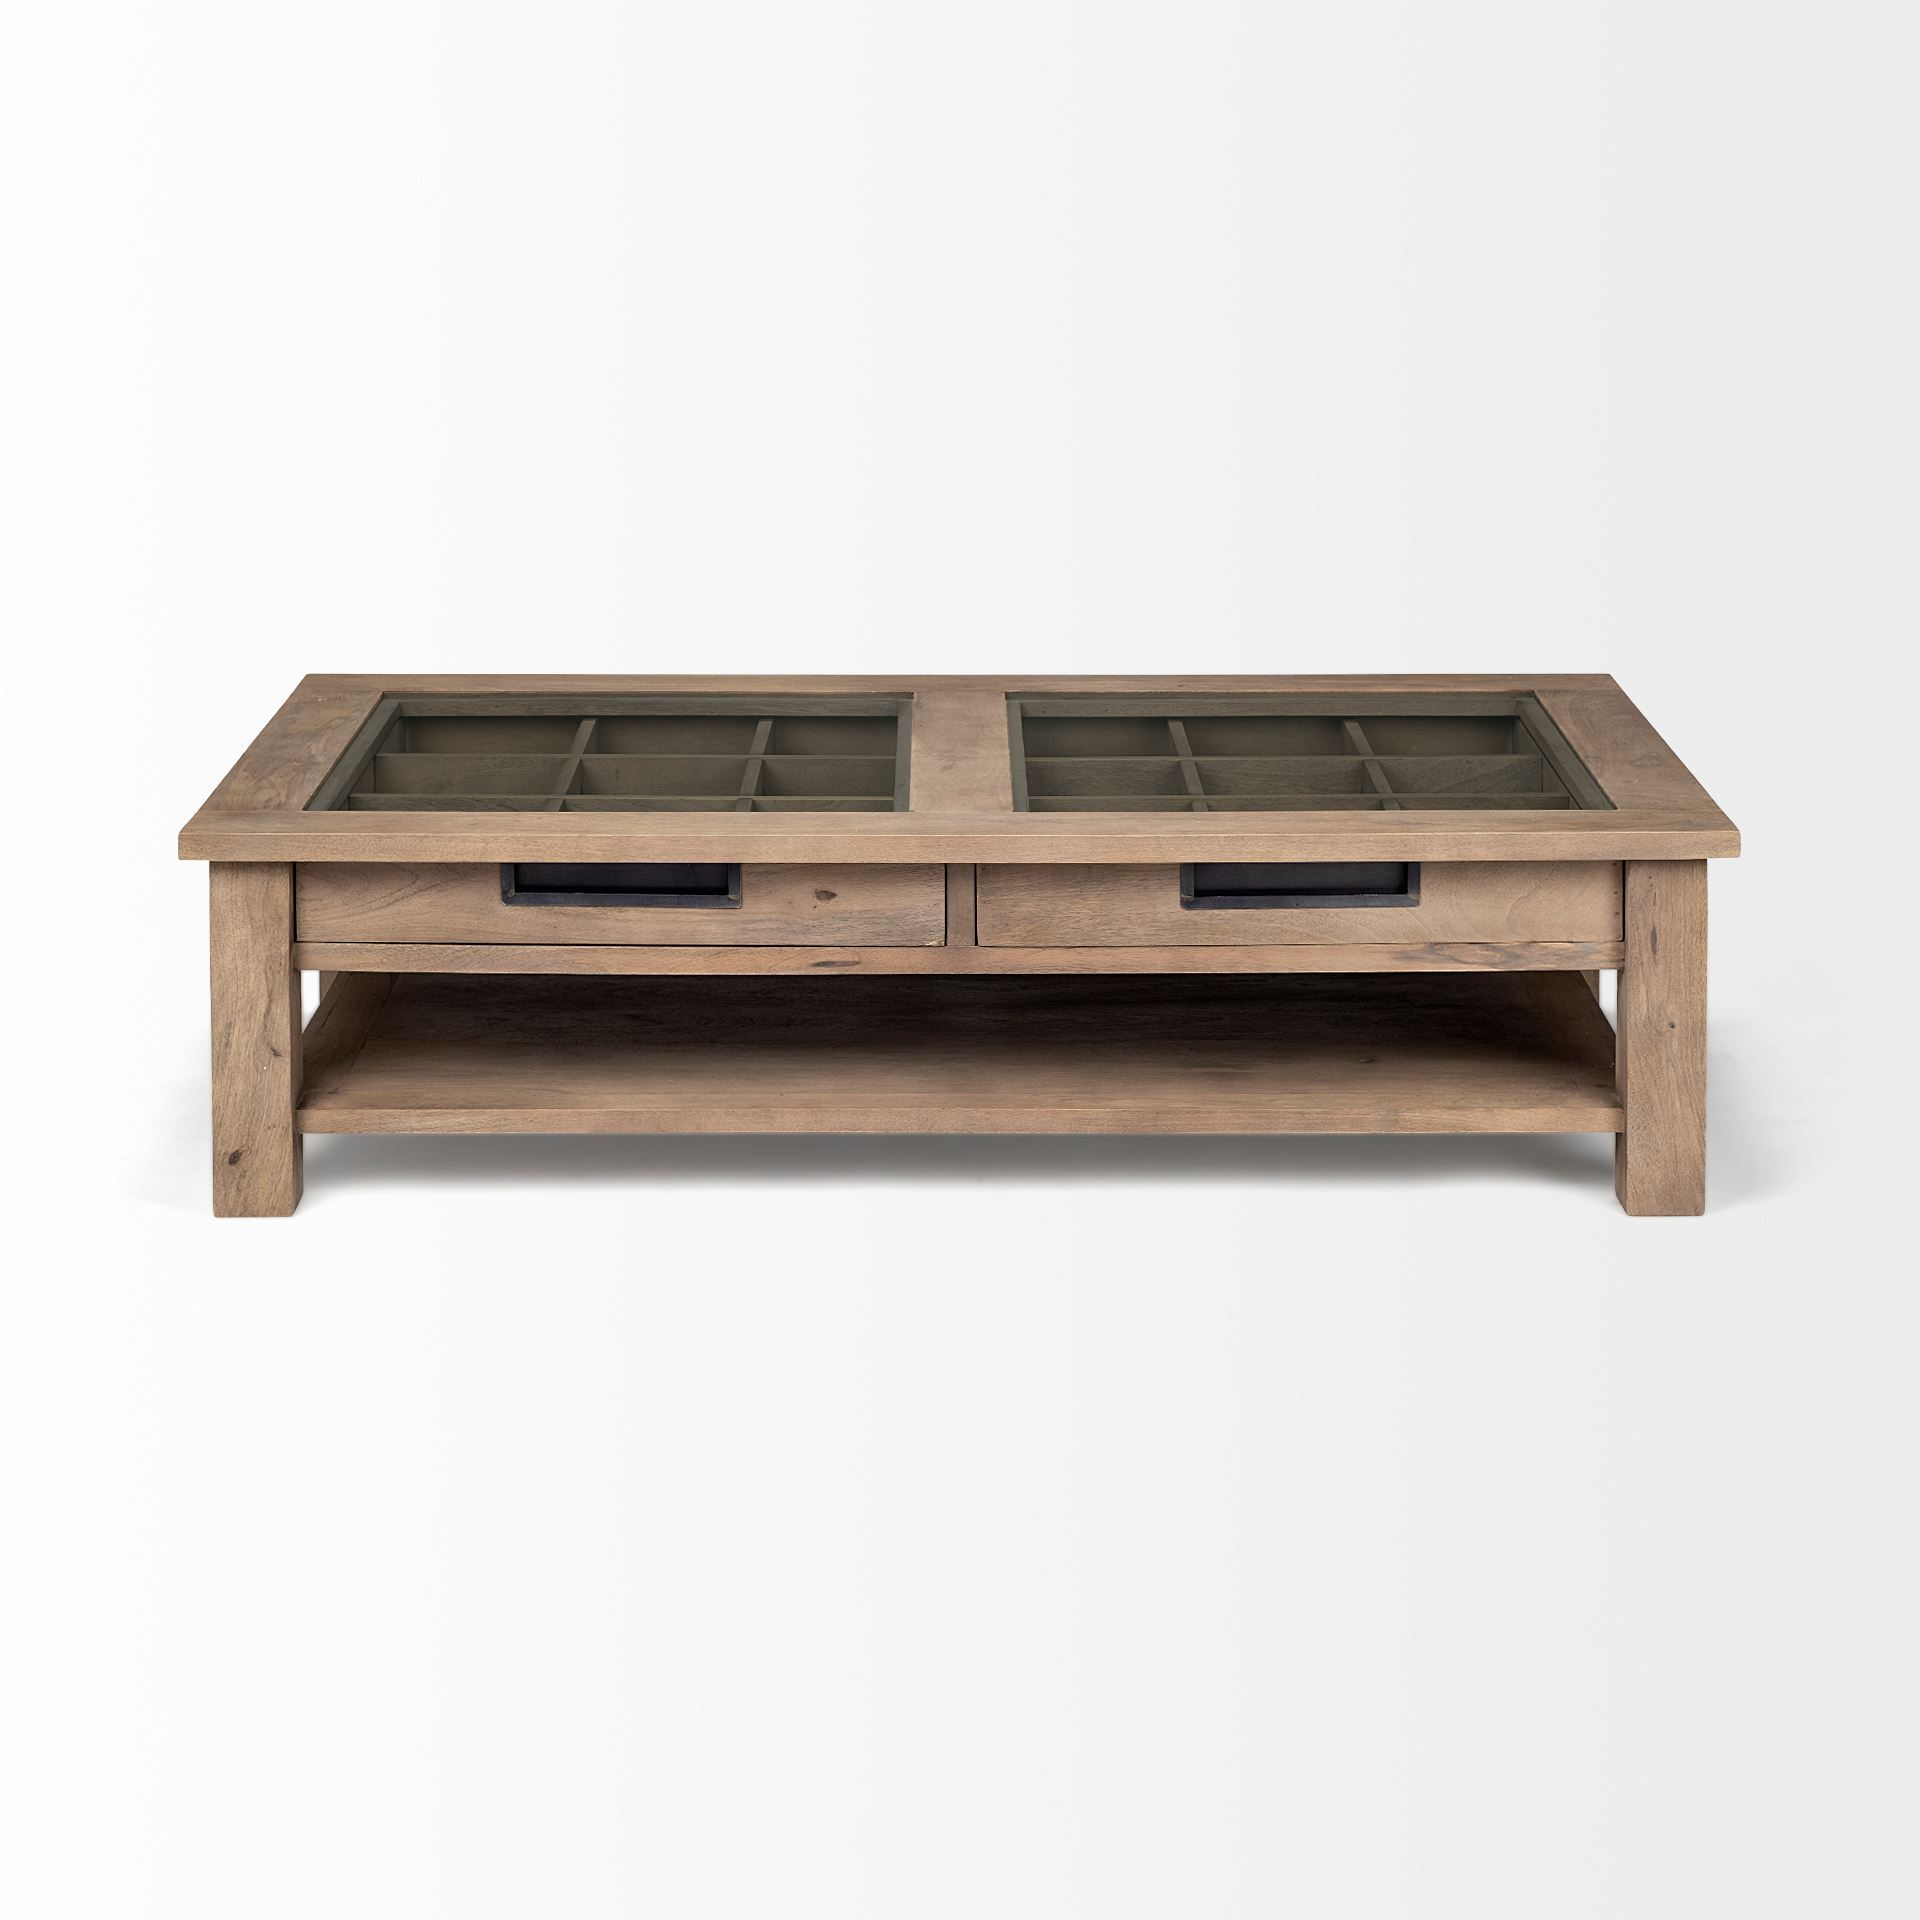 WRITE ME Rectangular Glass Top Solid Wood Base Coffee Table w/ 2 Drawers Coffee Tables HomeRoots